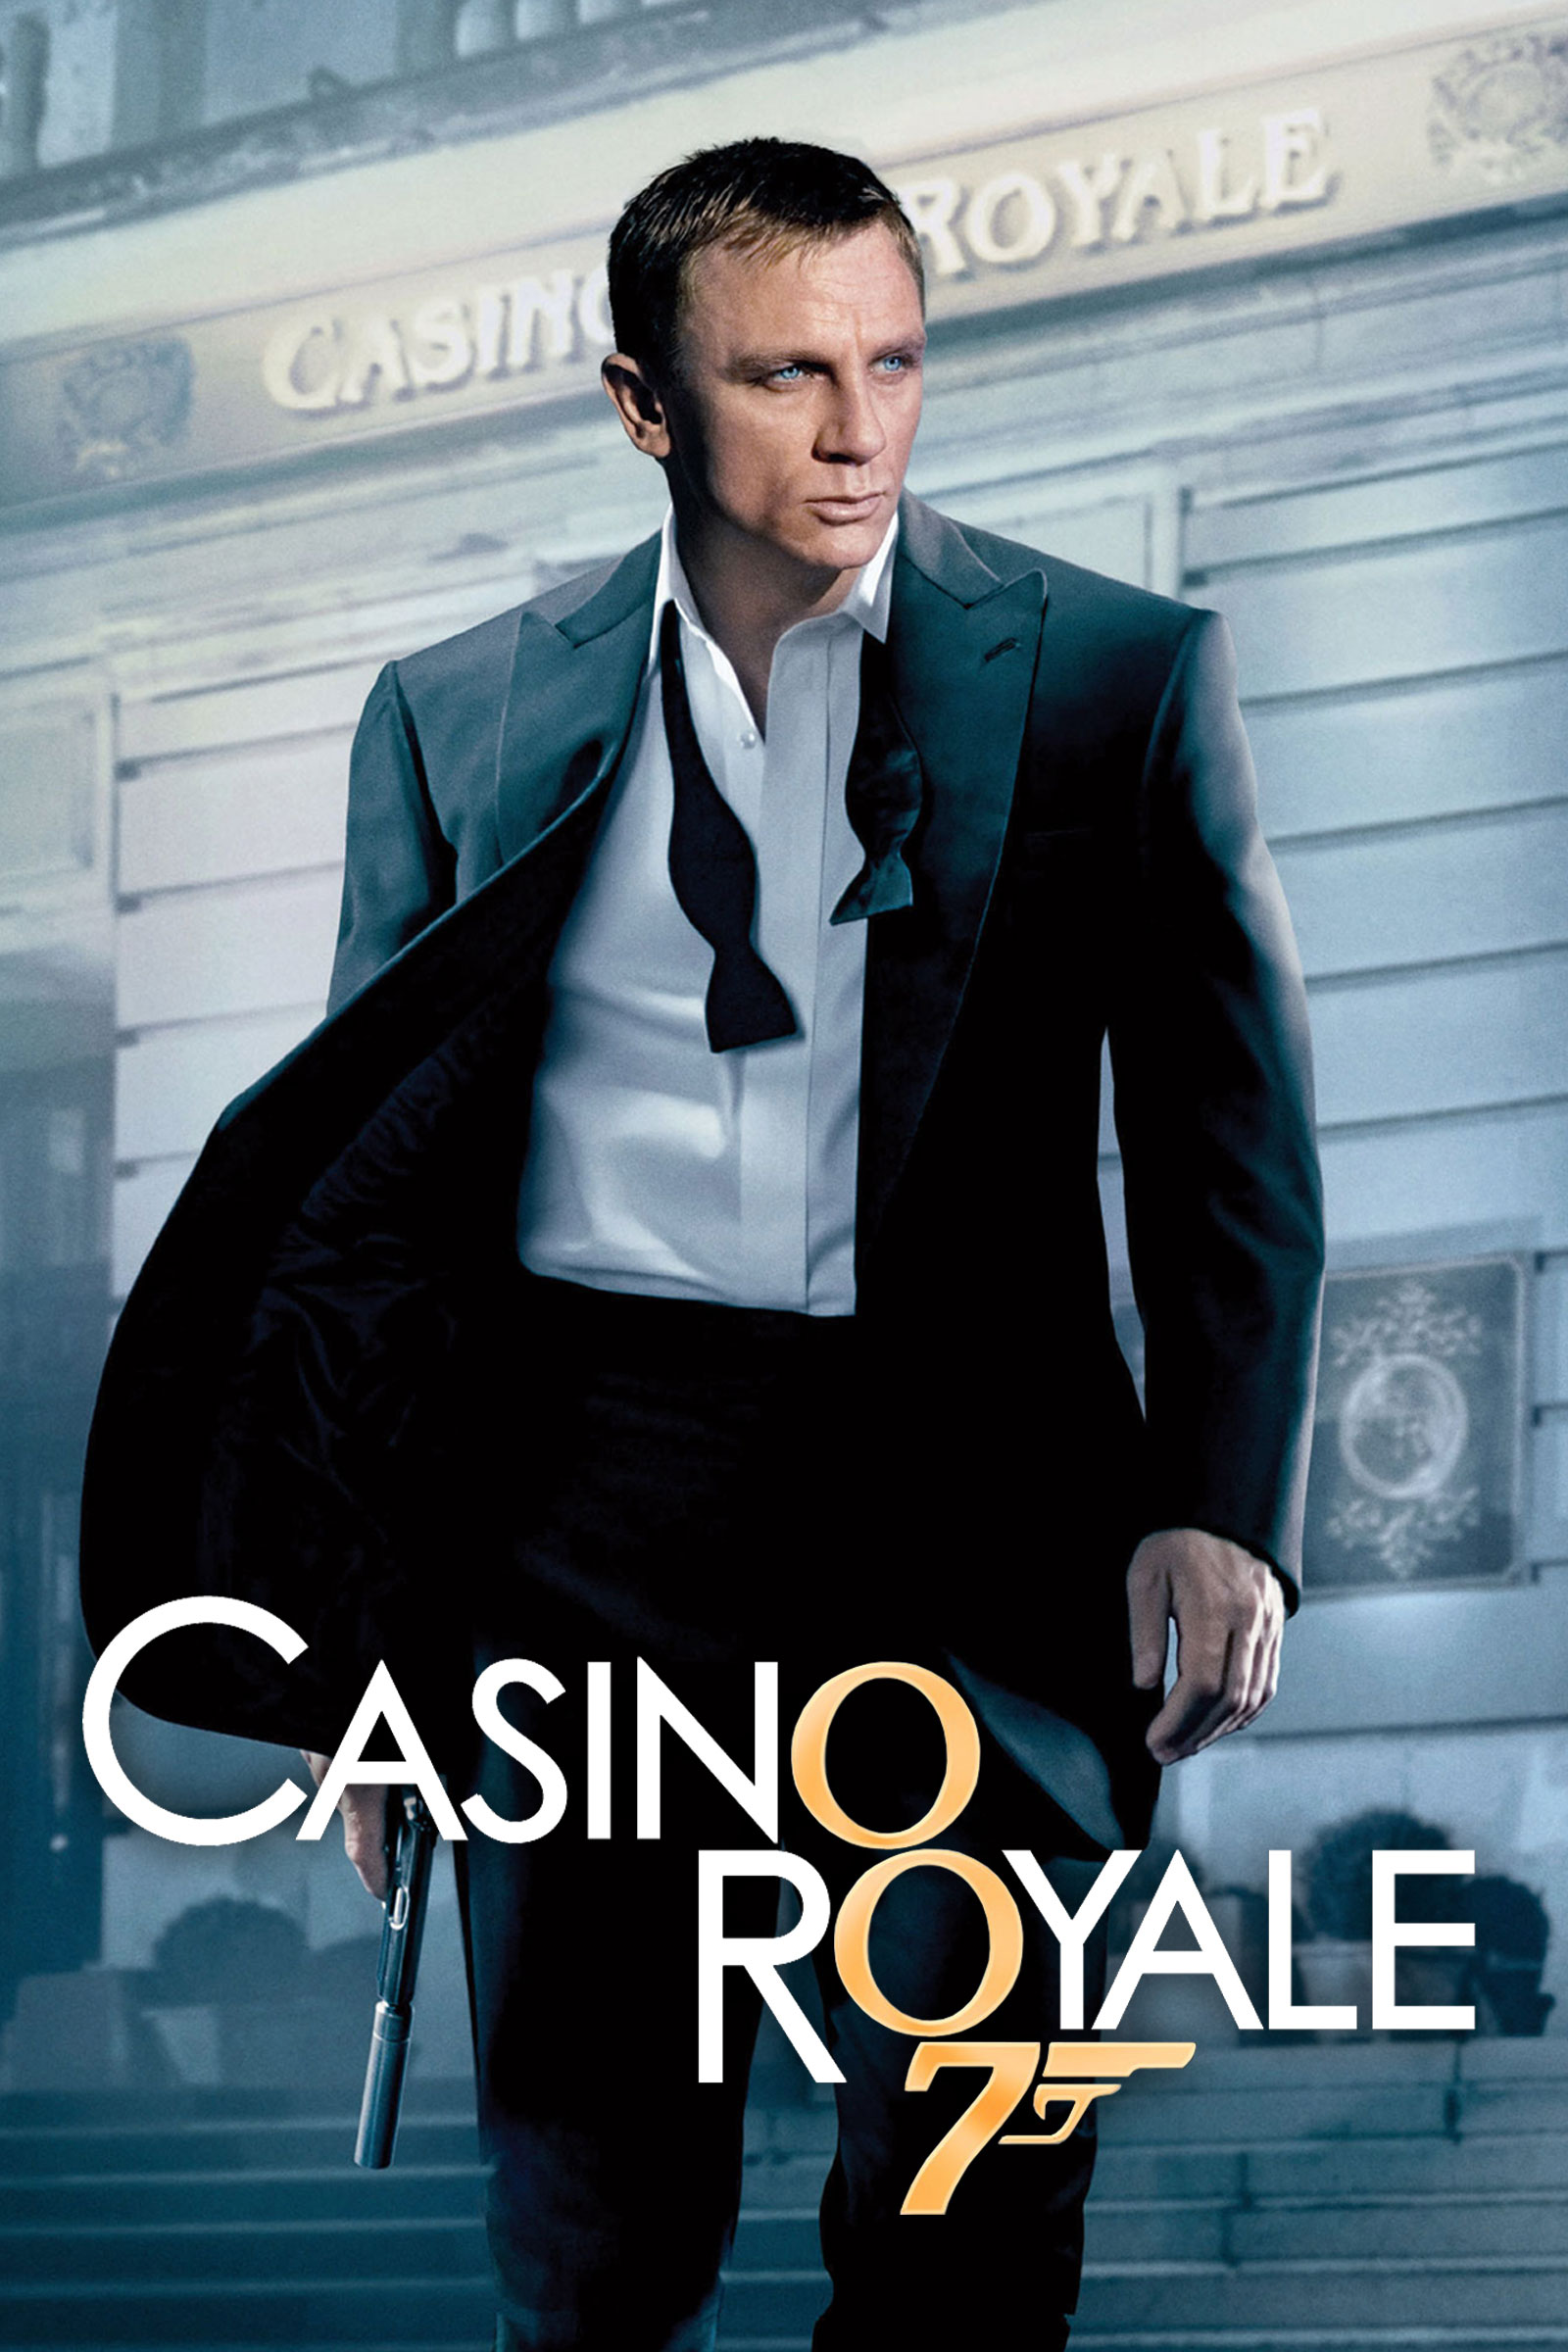 James Bond Casino Royale смотреть Online